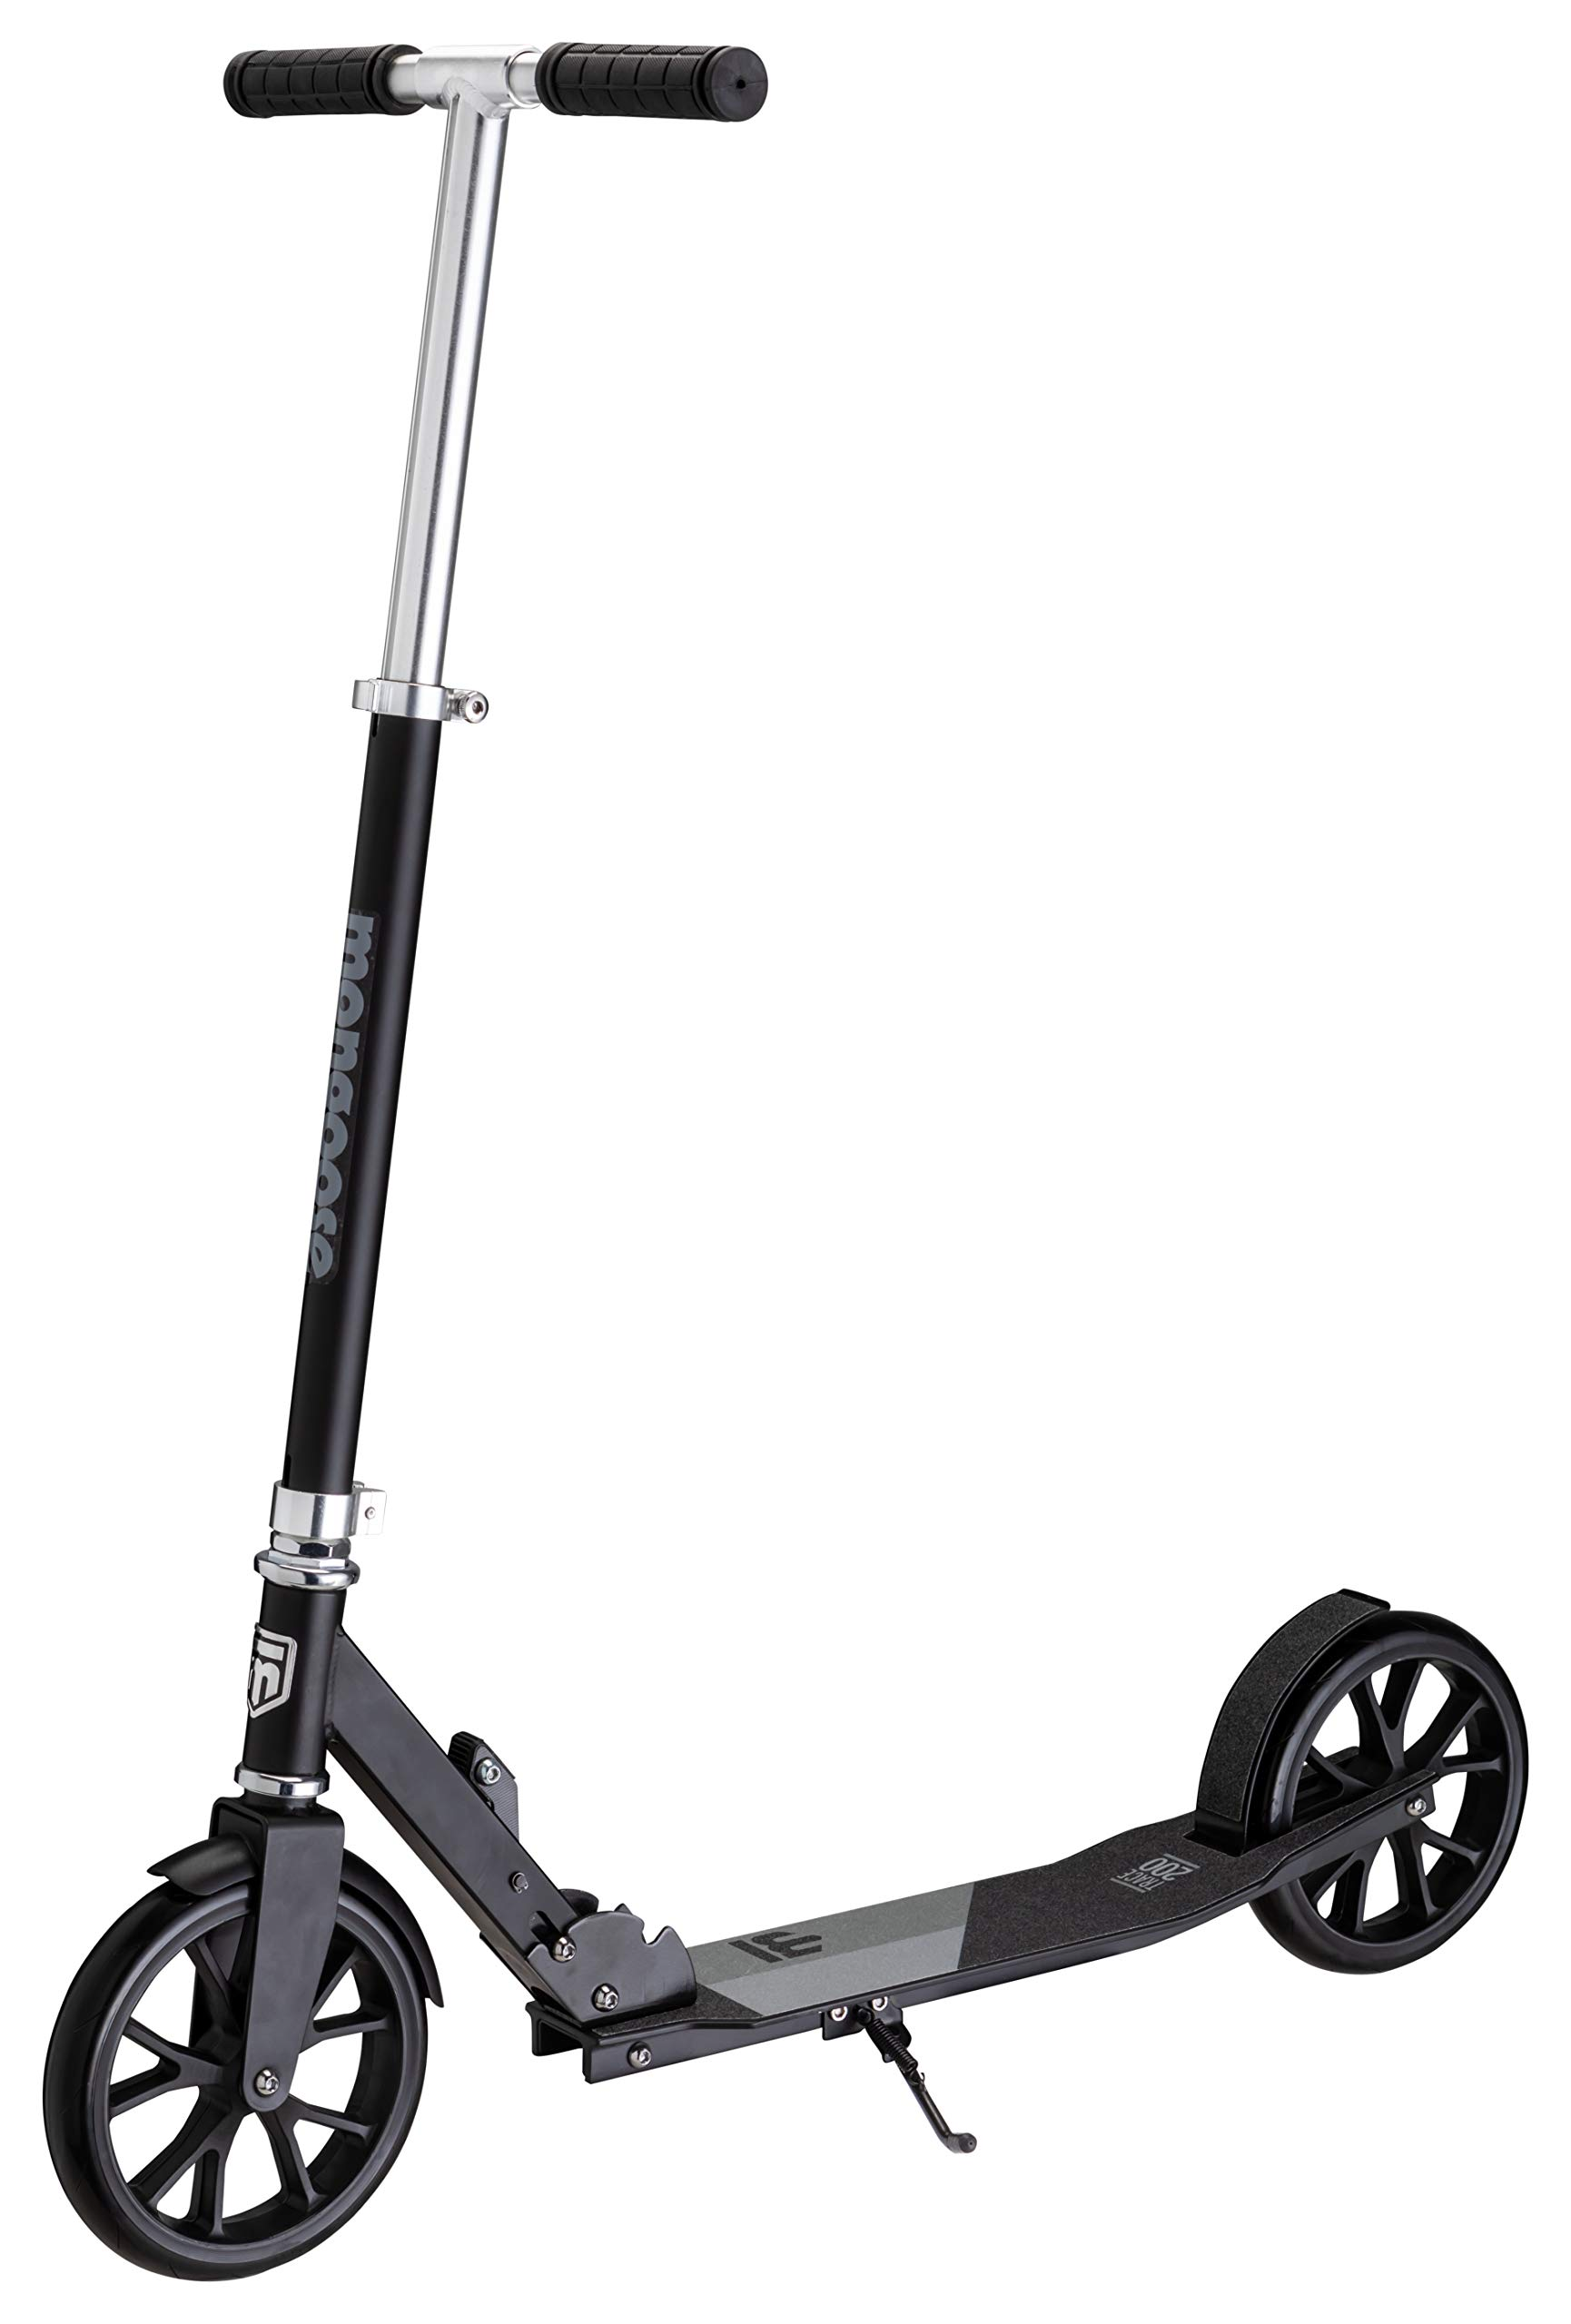 Mongoose Trace 200 Foldable Kick Scooter, Featuring Quick-Release Adjustable Height Handlebars with 205mm Wheels, Black/Grey by Mongoose